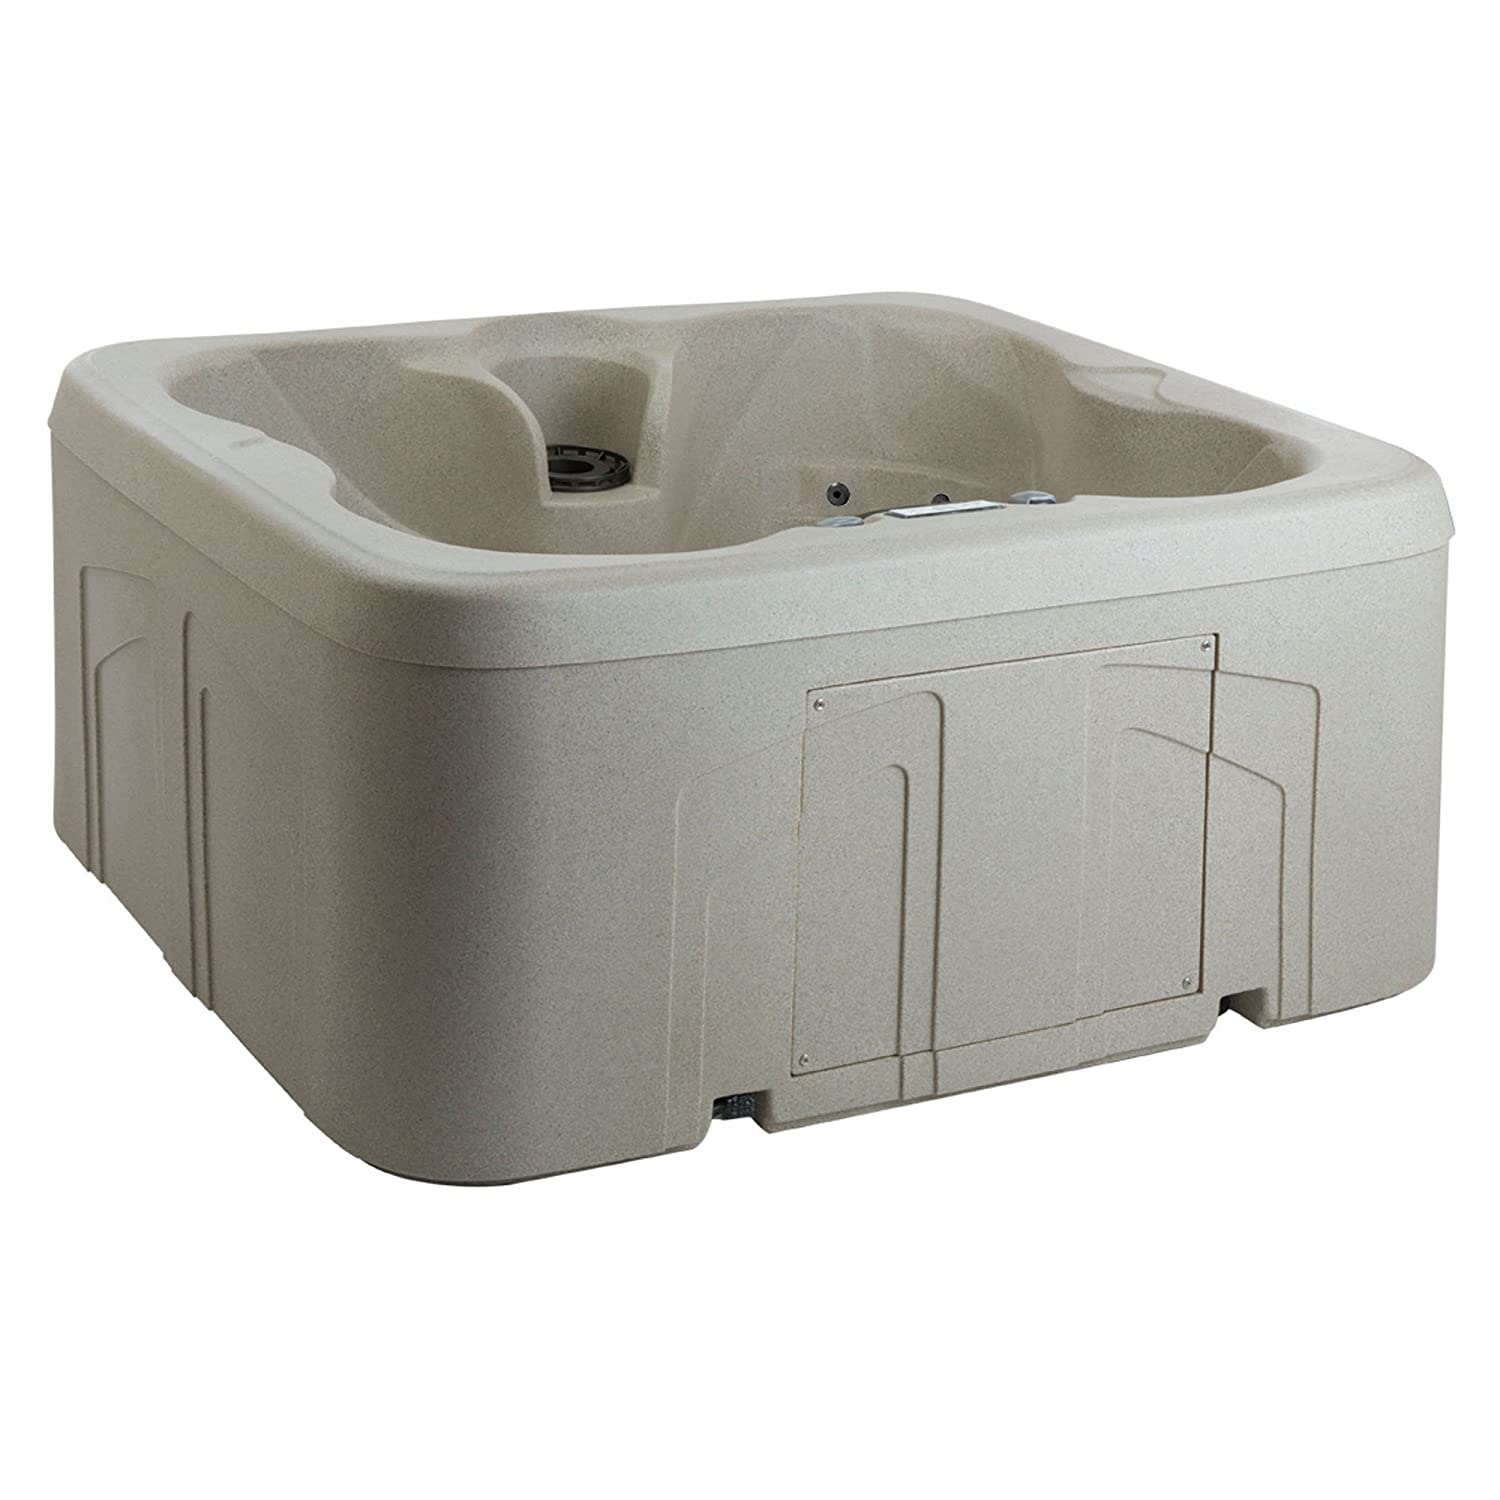 Rock Solid Simplicity Plug and Play 4 Person Hot Tub Spa With 13 Jets